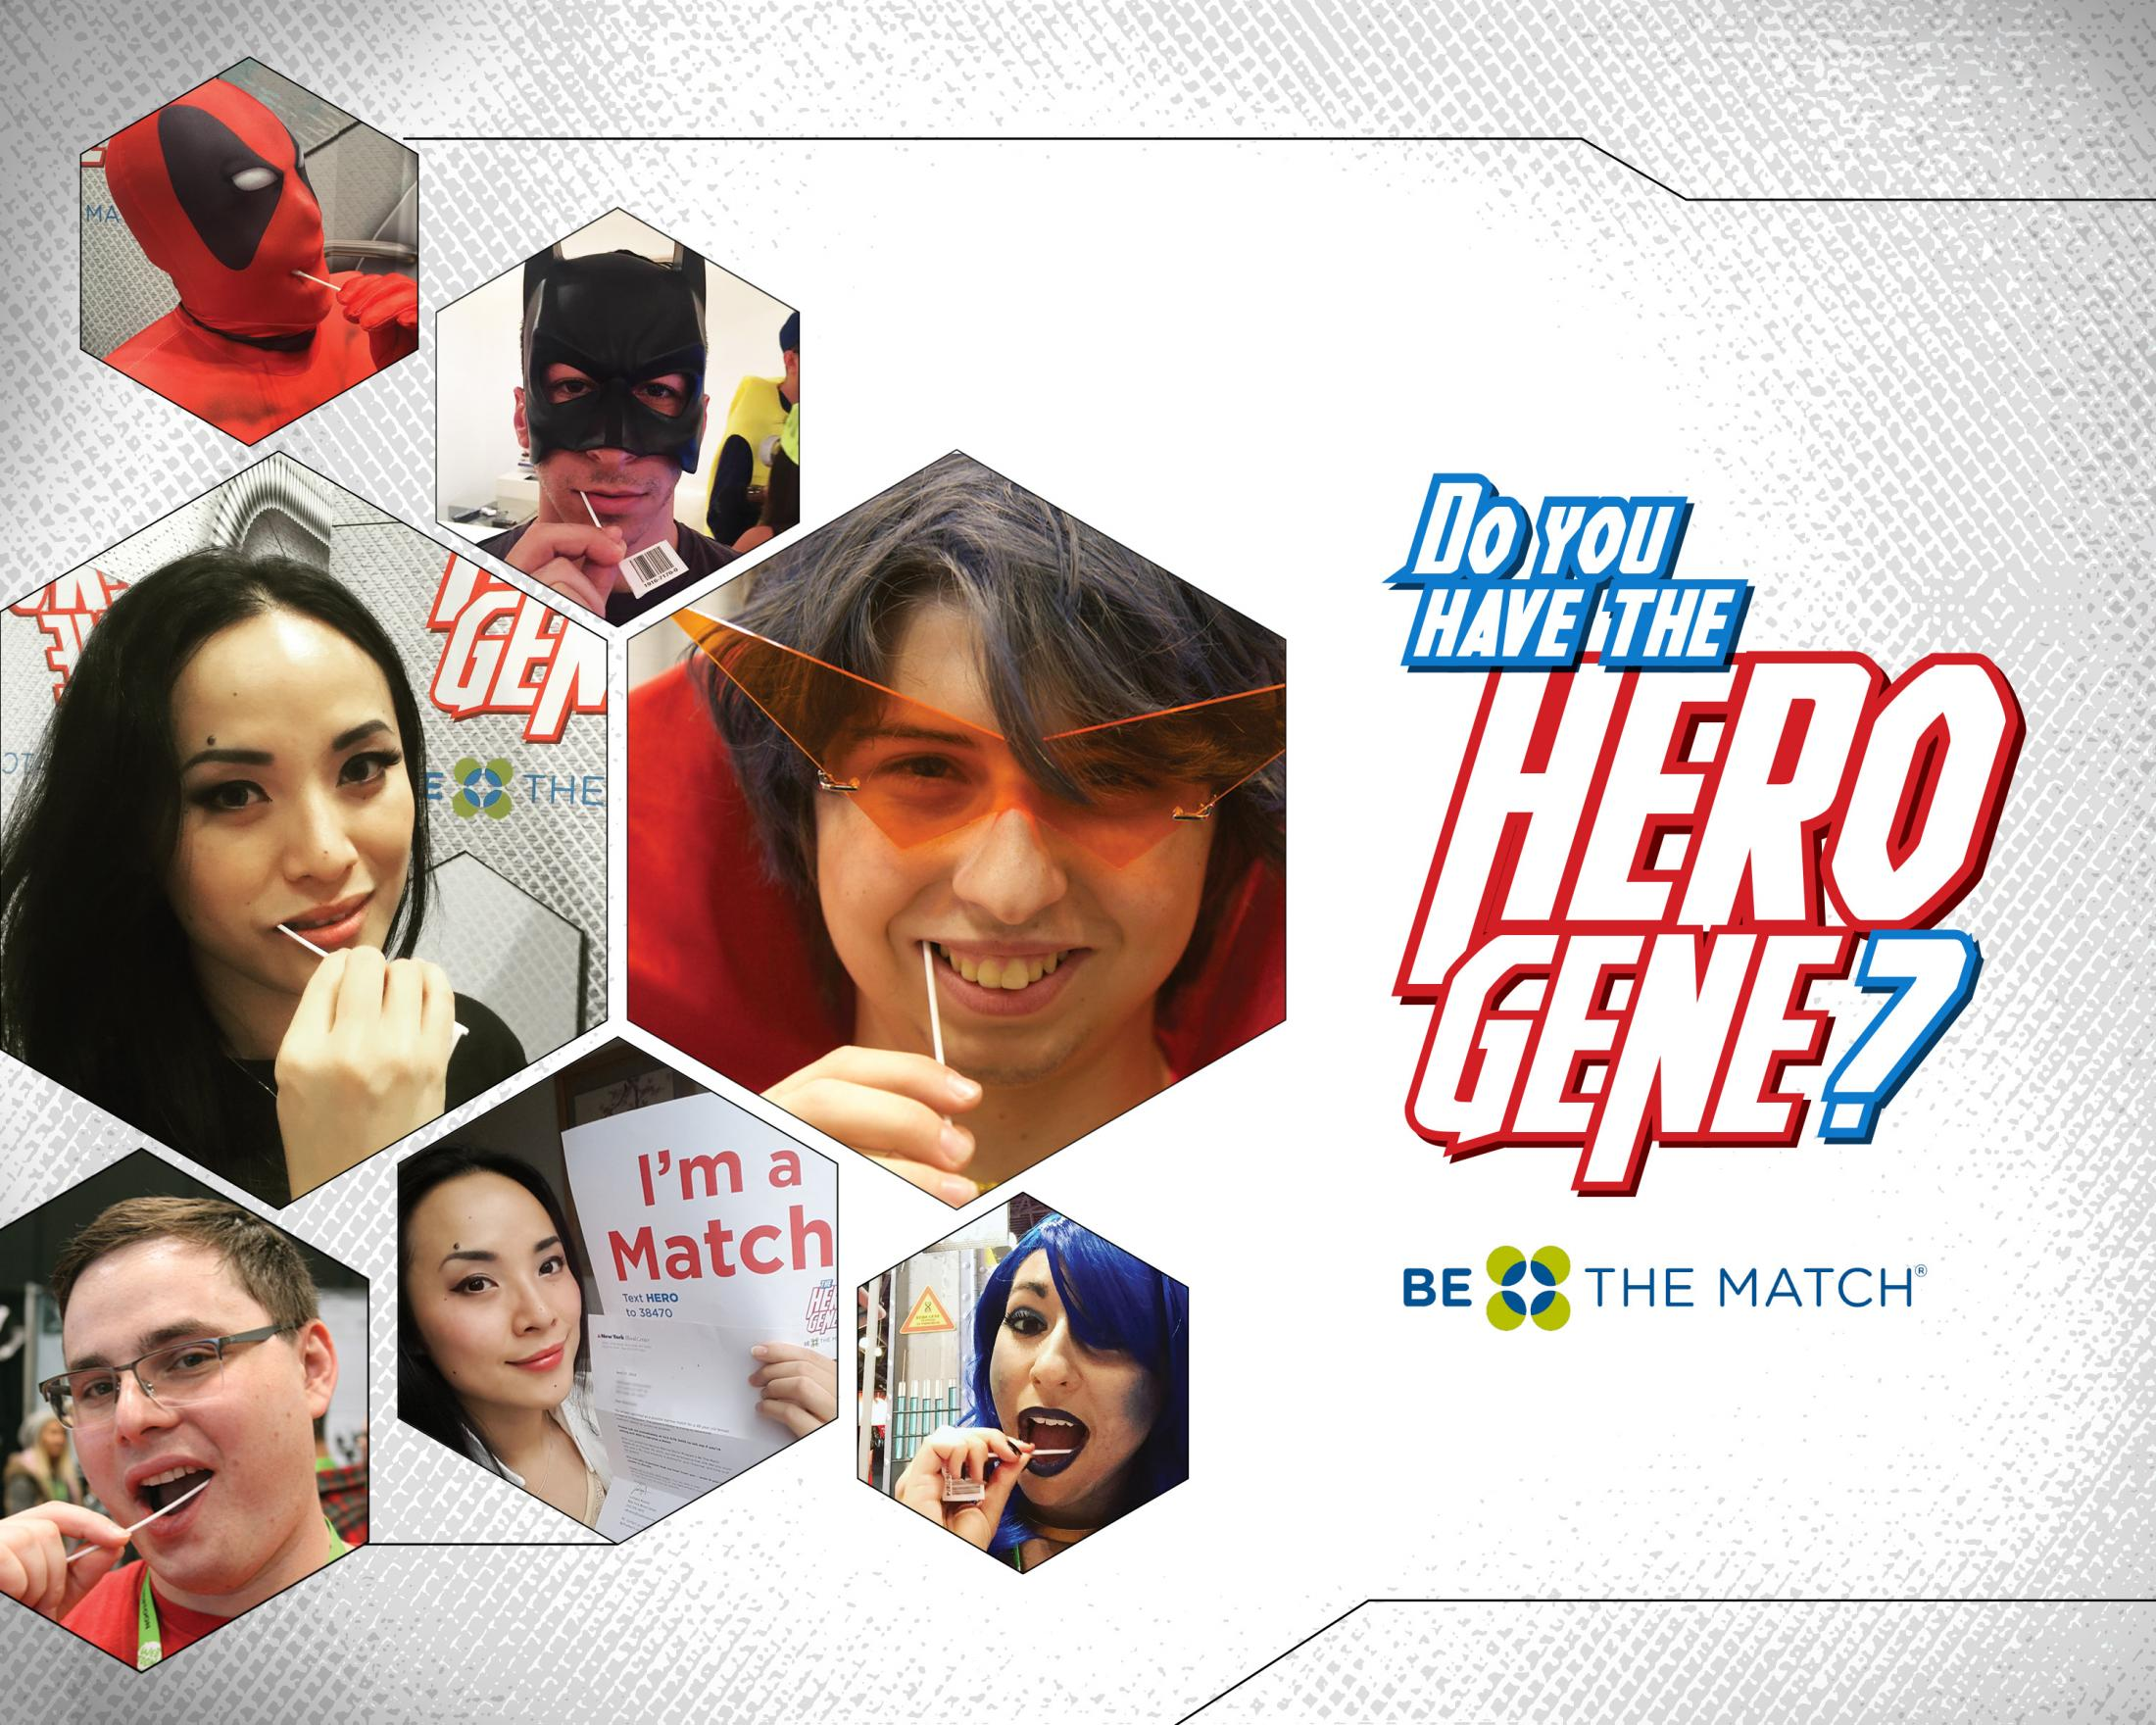 Image Media for Hero Gene